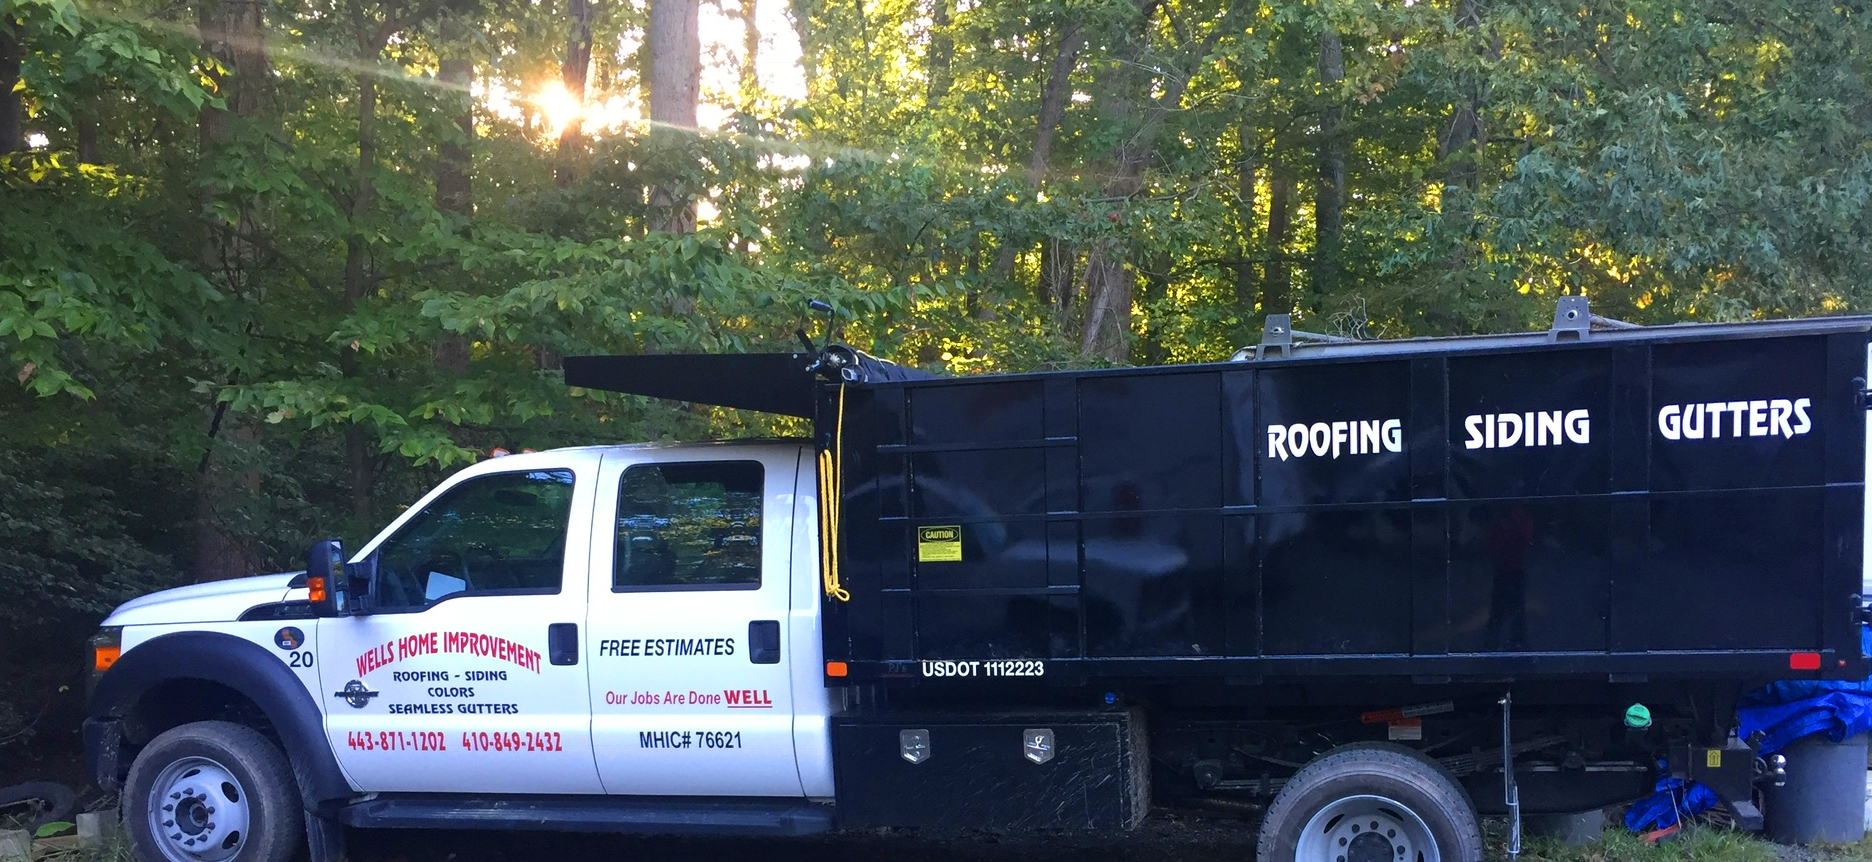 Commercial and Residential Roofers in Bowie, Maryland